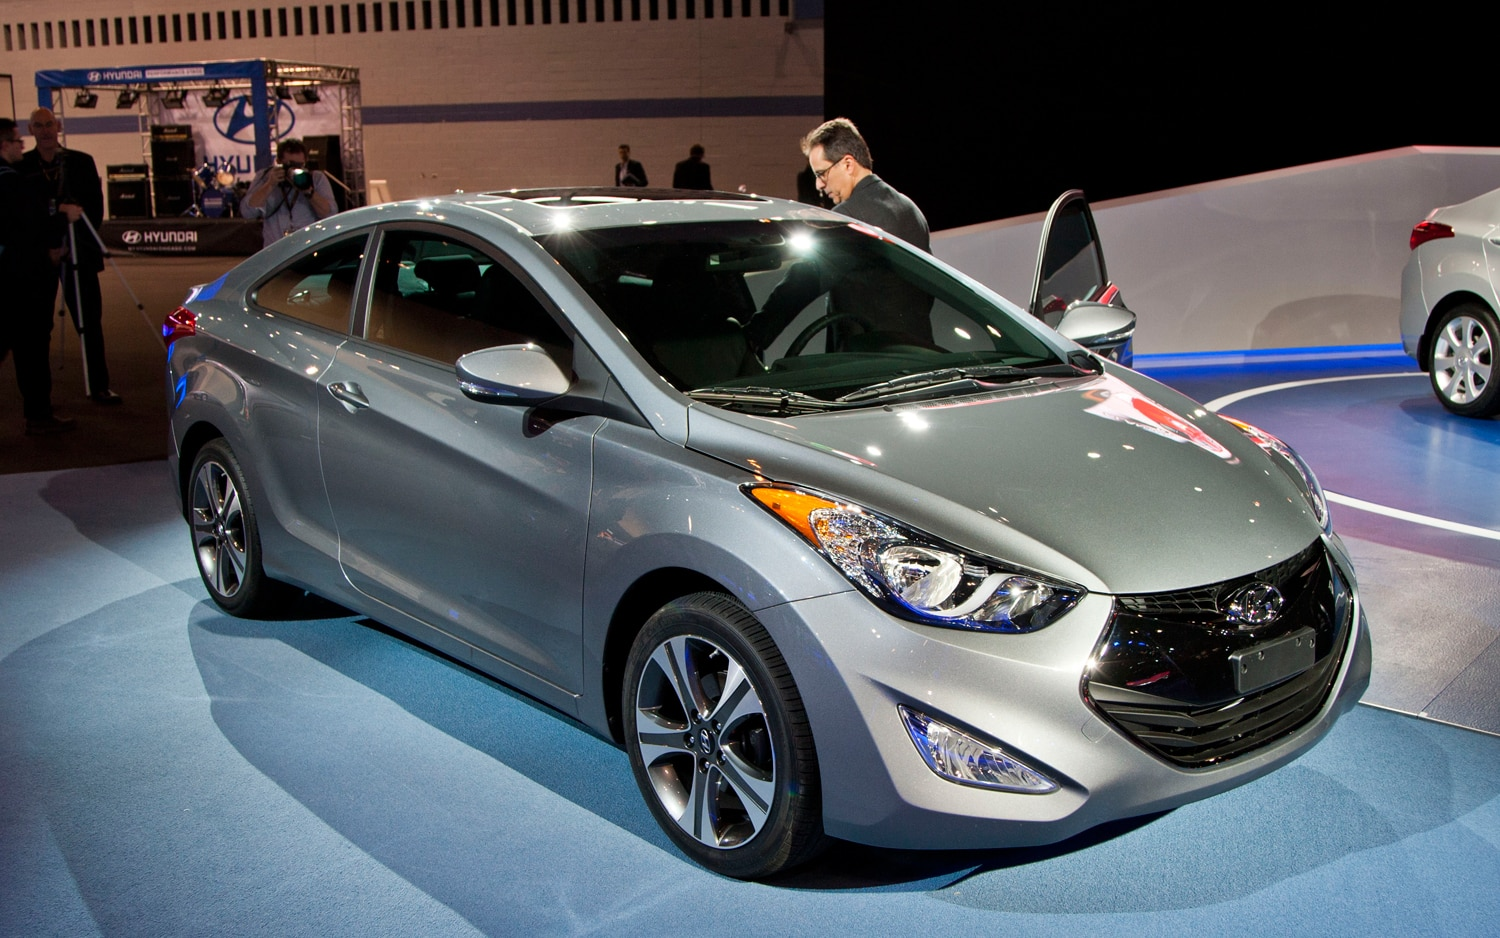 pictures 2013 hyundai elantra - photo #39